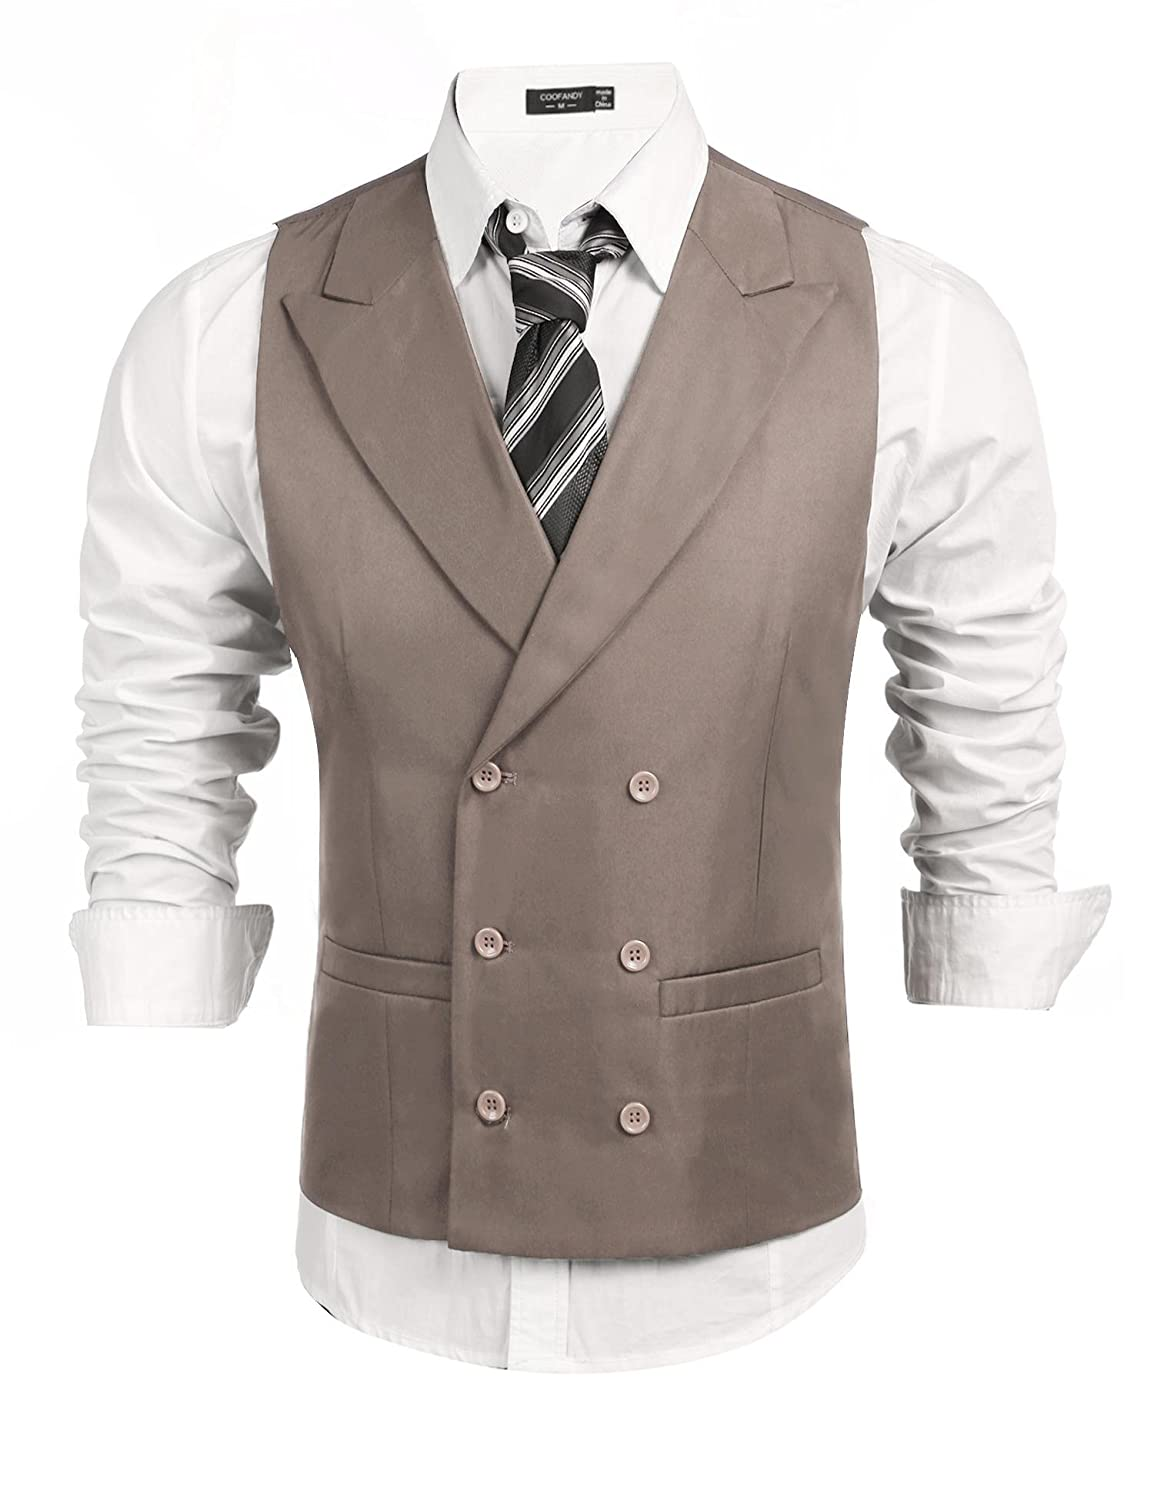 Coofandy Mens Waistcoat Double Breasted Slim Fit Formal Wedding Suit Vests